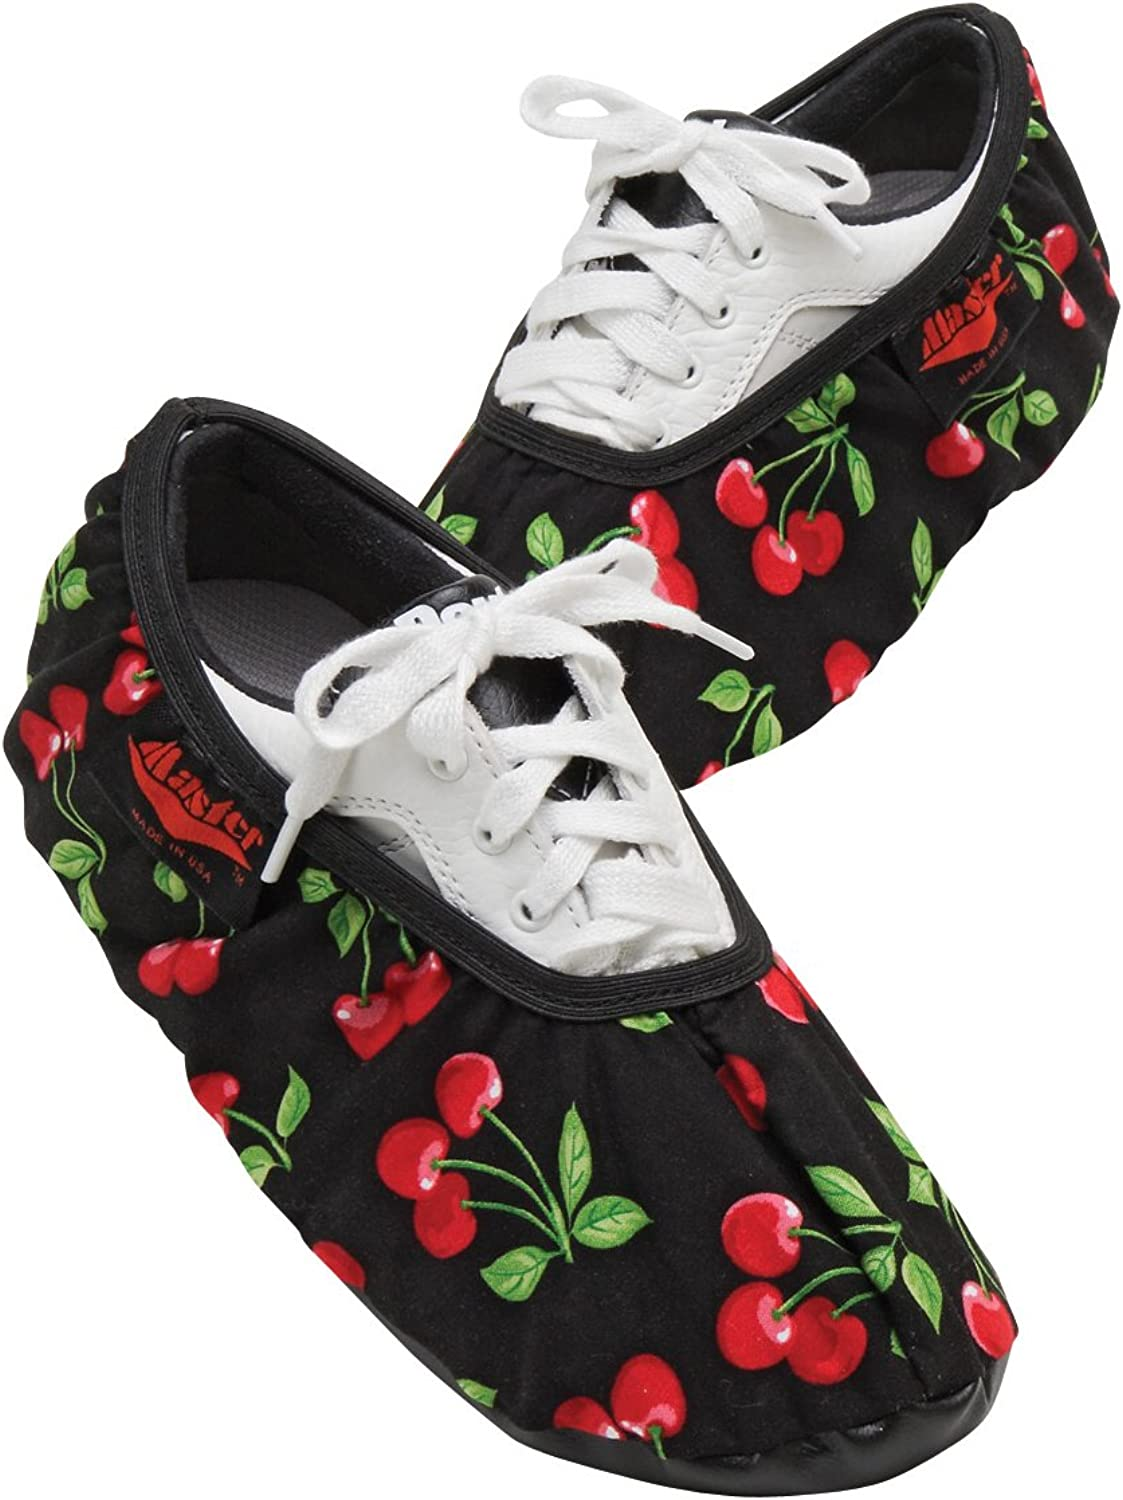 Master Industries Women's Bowling shoes Cover, Cherries, Large